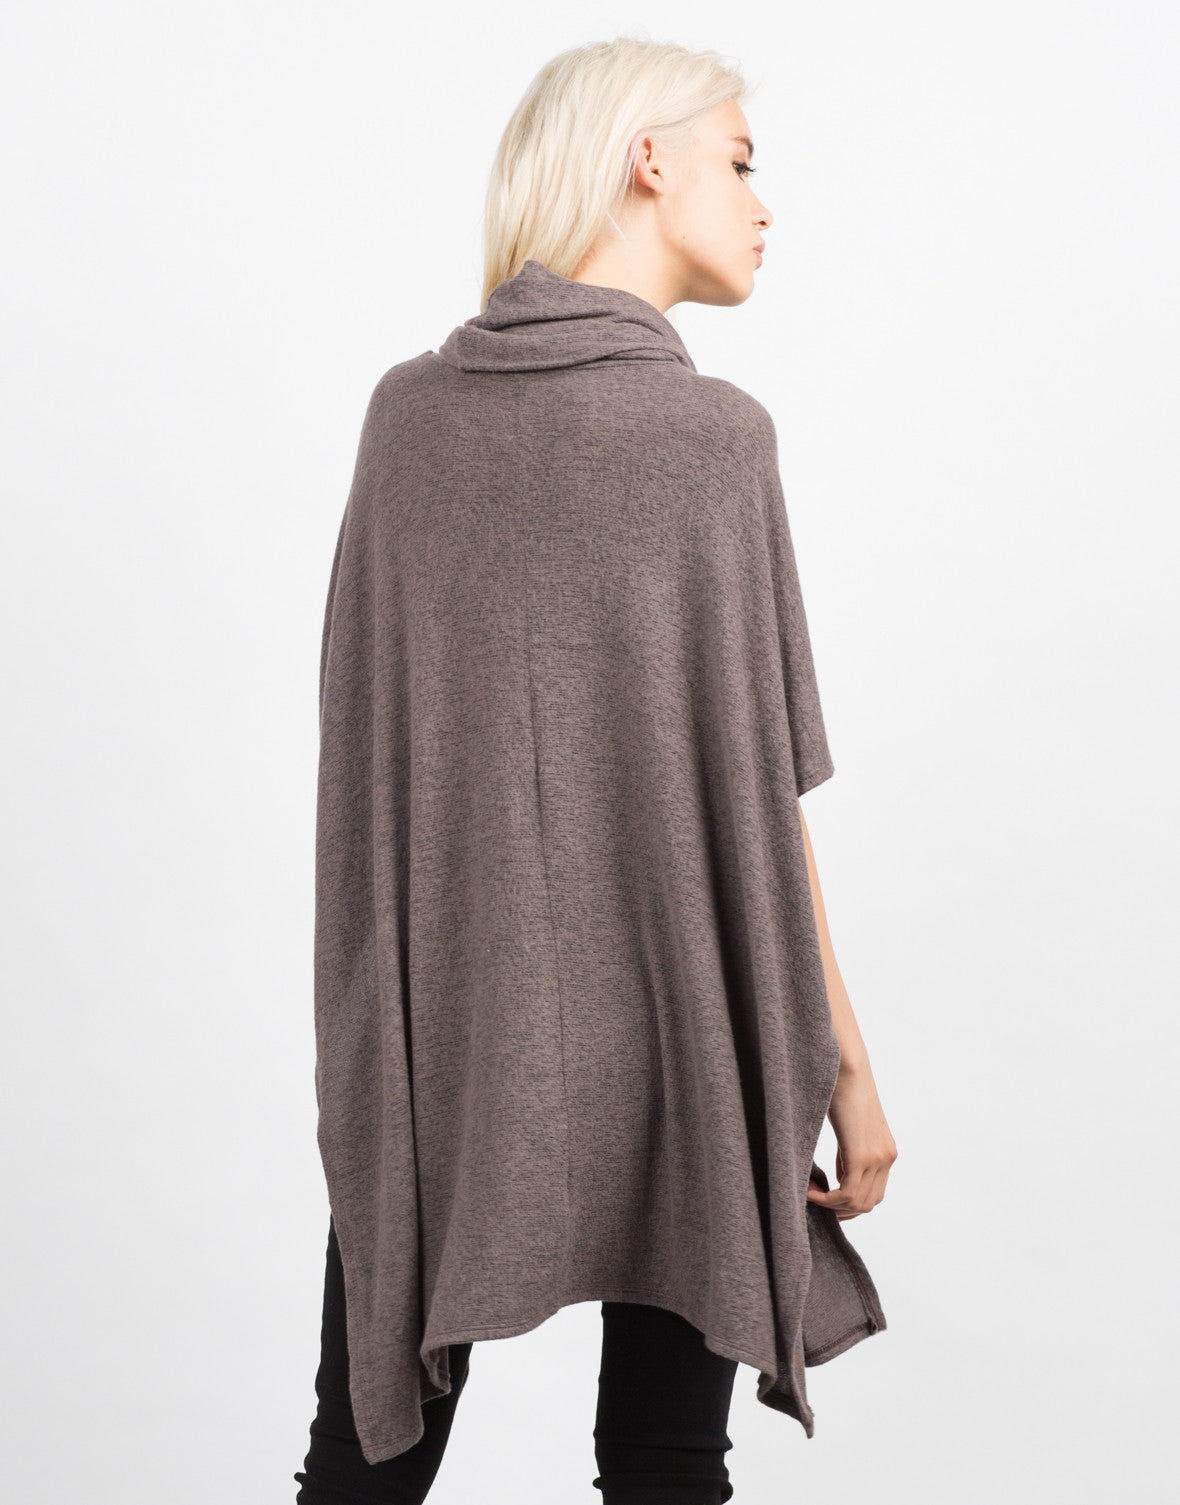 Back View of Super Soft Cowl Neck Sweater Top